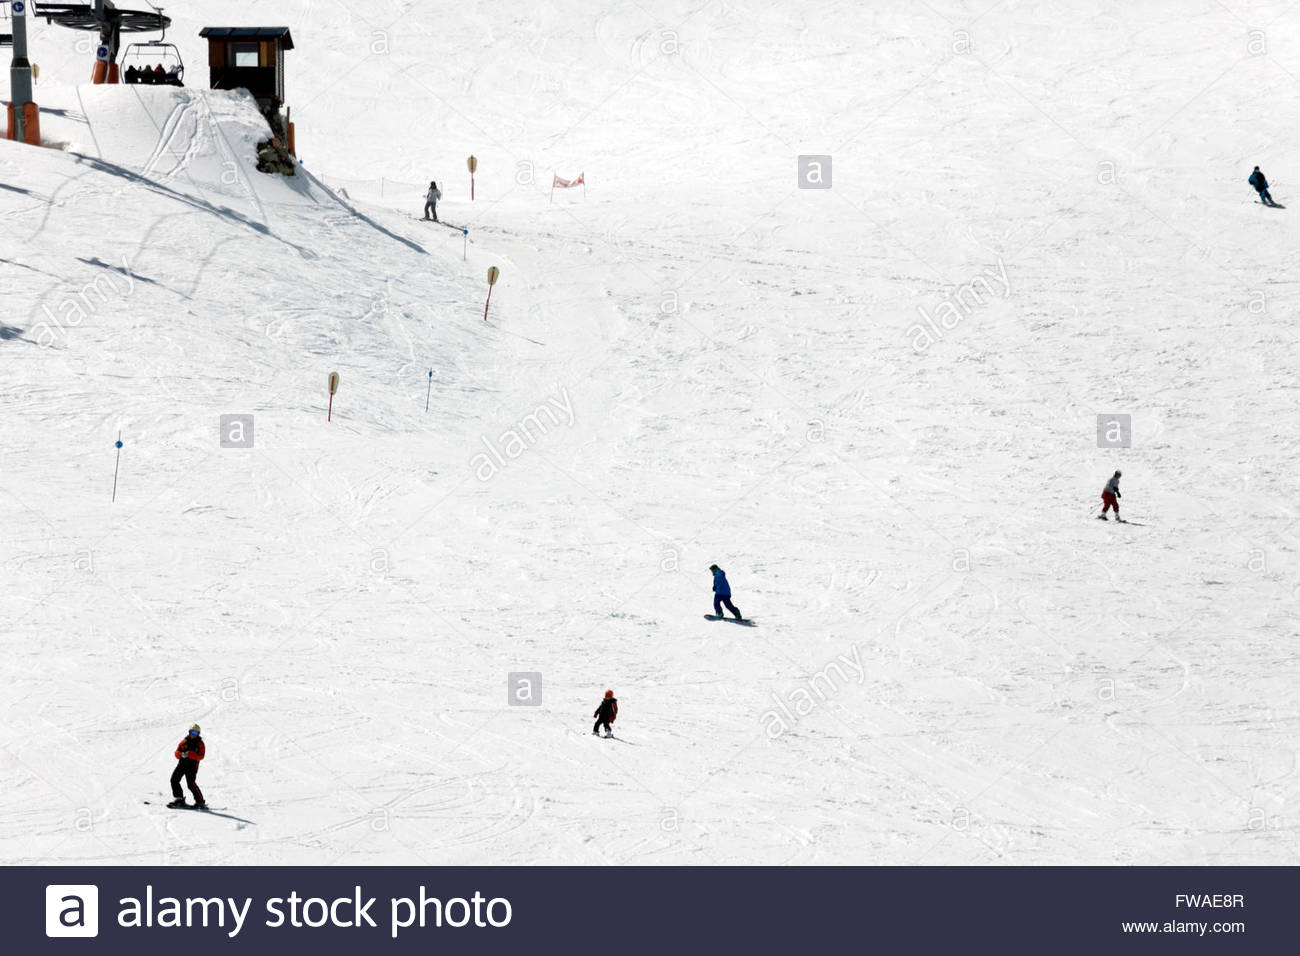 people on a large slope skiing down hill - Stock Image